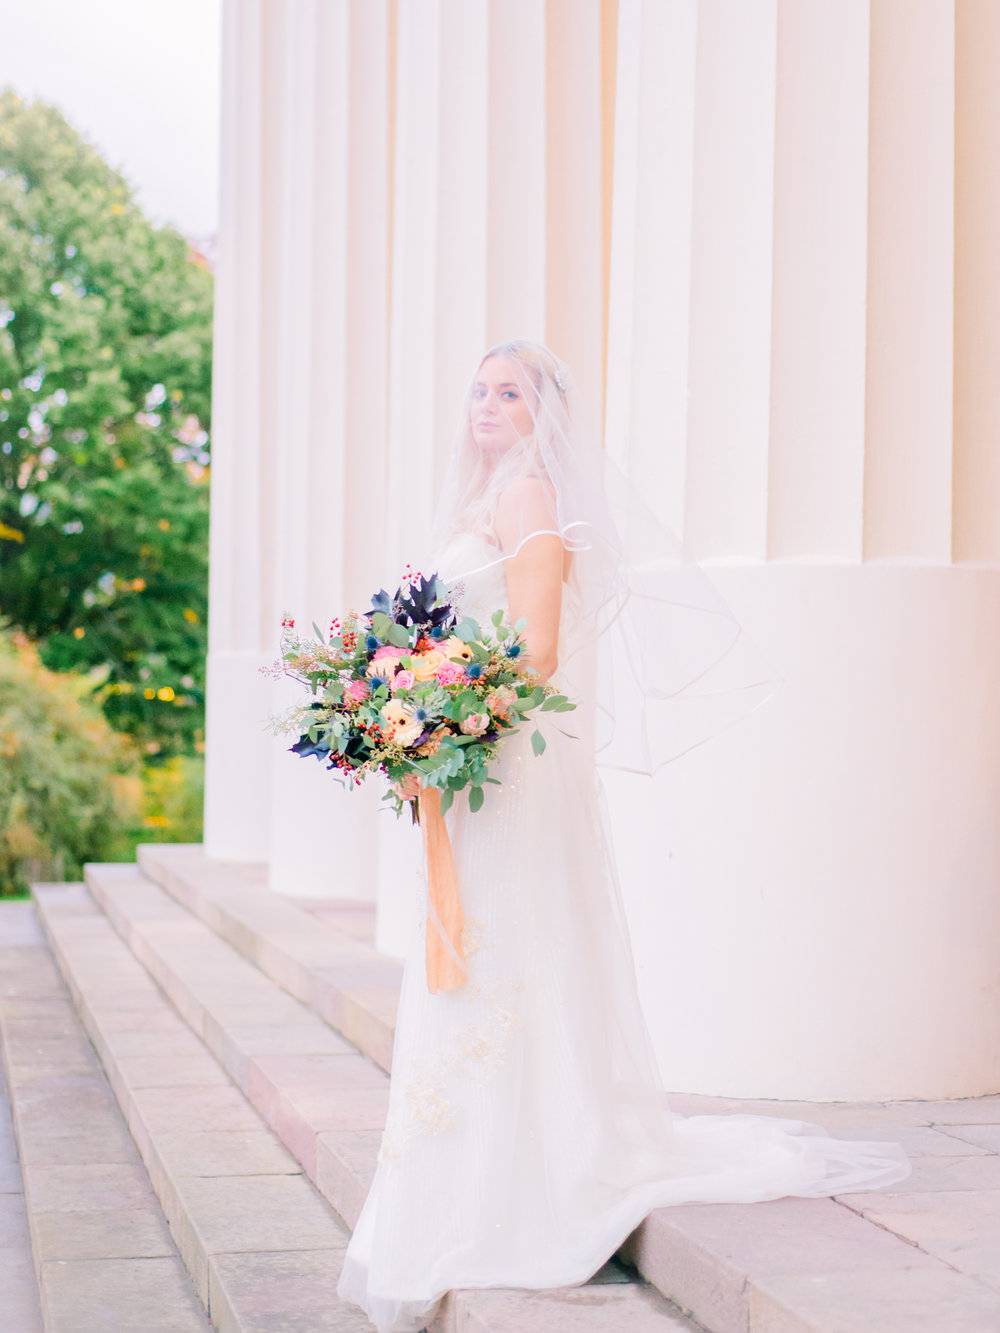 Elegant Organic Fall Swedish Bridal Wedding Styled Shoot - Erika Alvarenga Photography-67.jpg